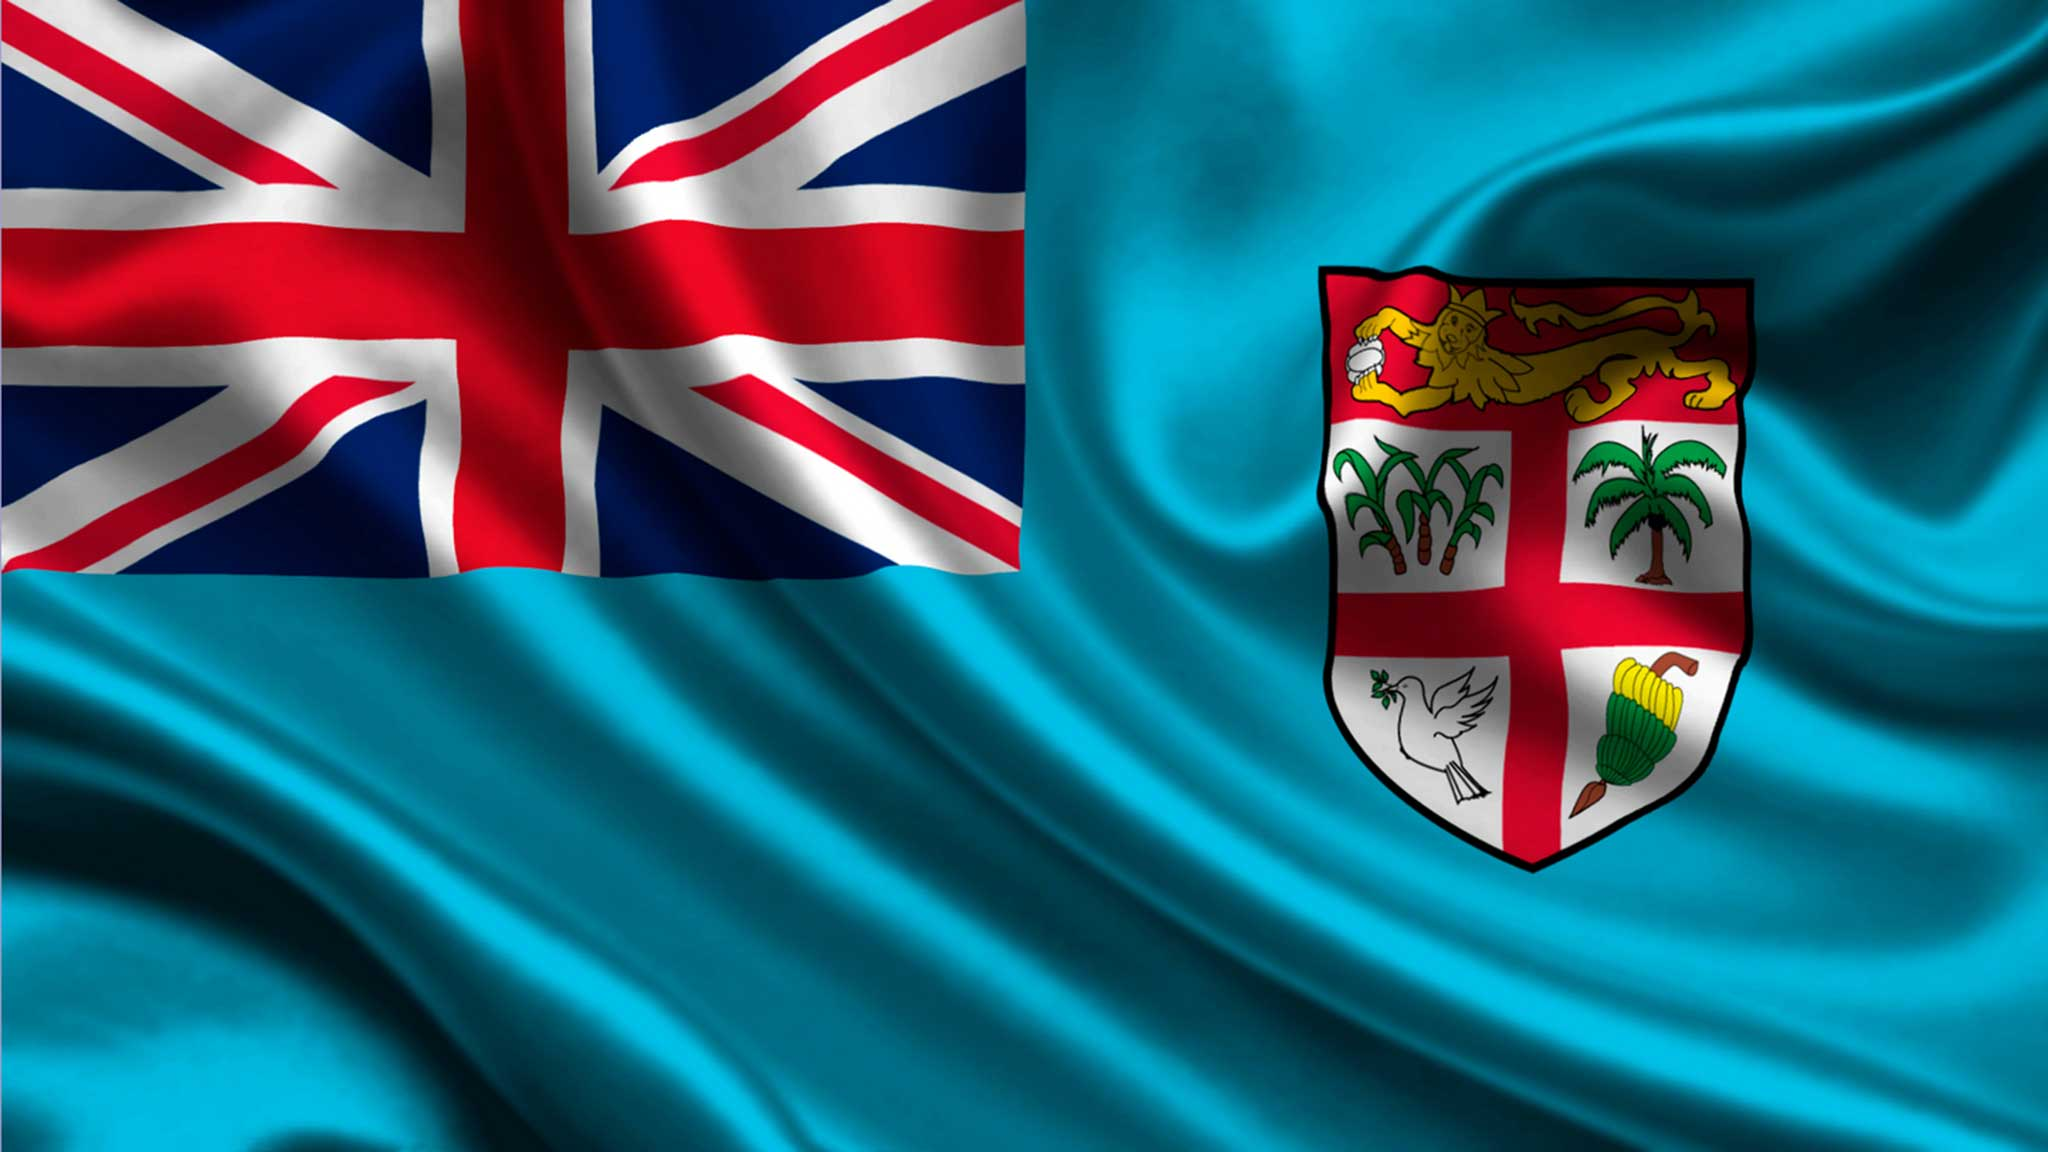 As Fiji replaces its national emblem what are the best and worst